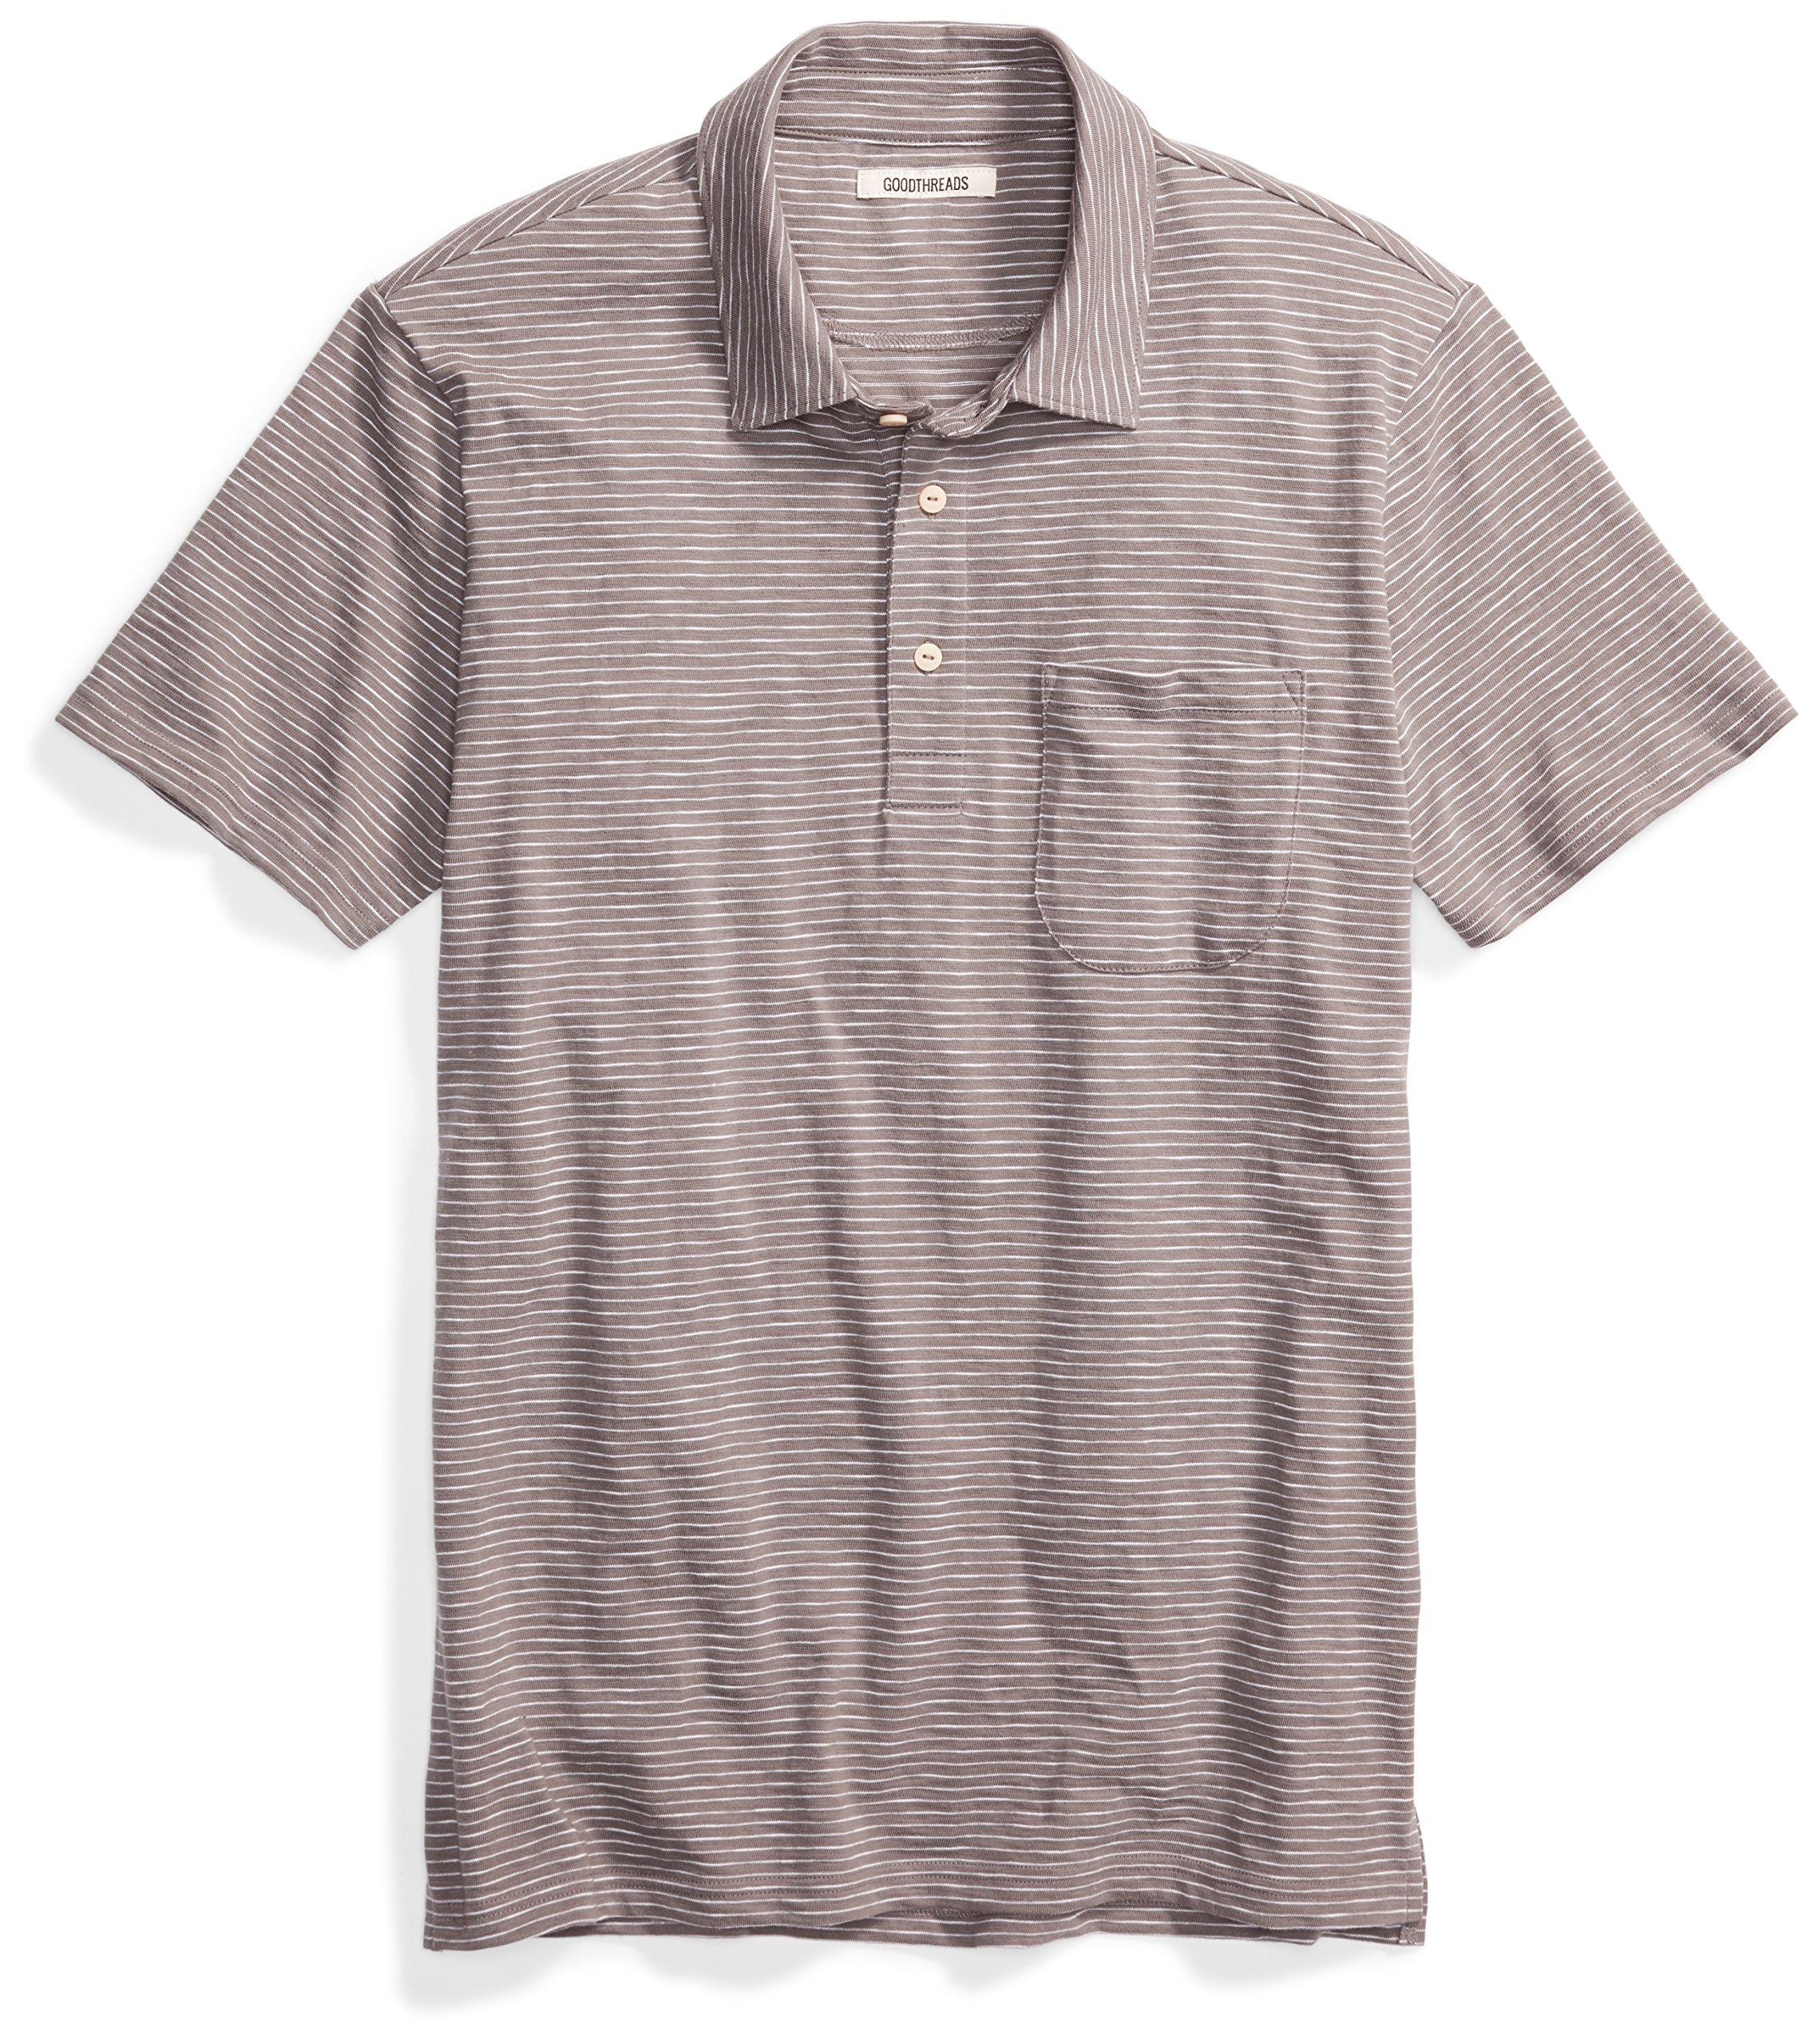 Goodthreads Men's Short-Sleeve Striped Slub Polo, Castle Rock/Grey/White Stripe, Large